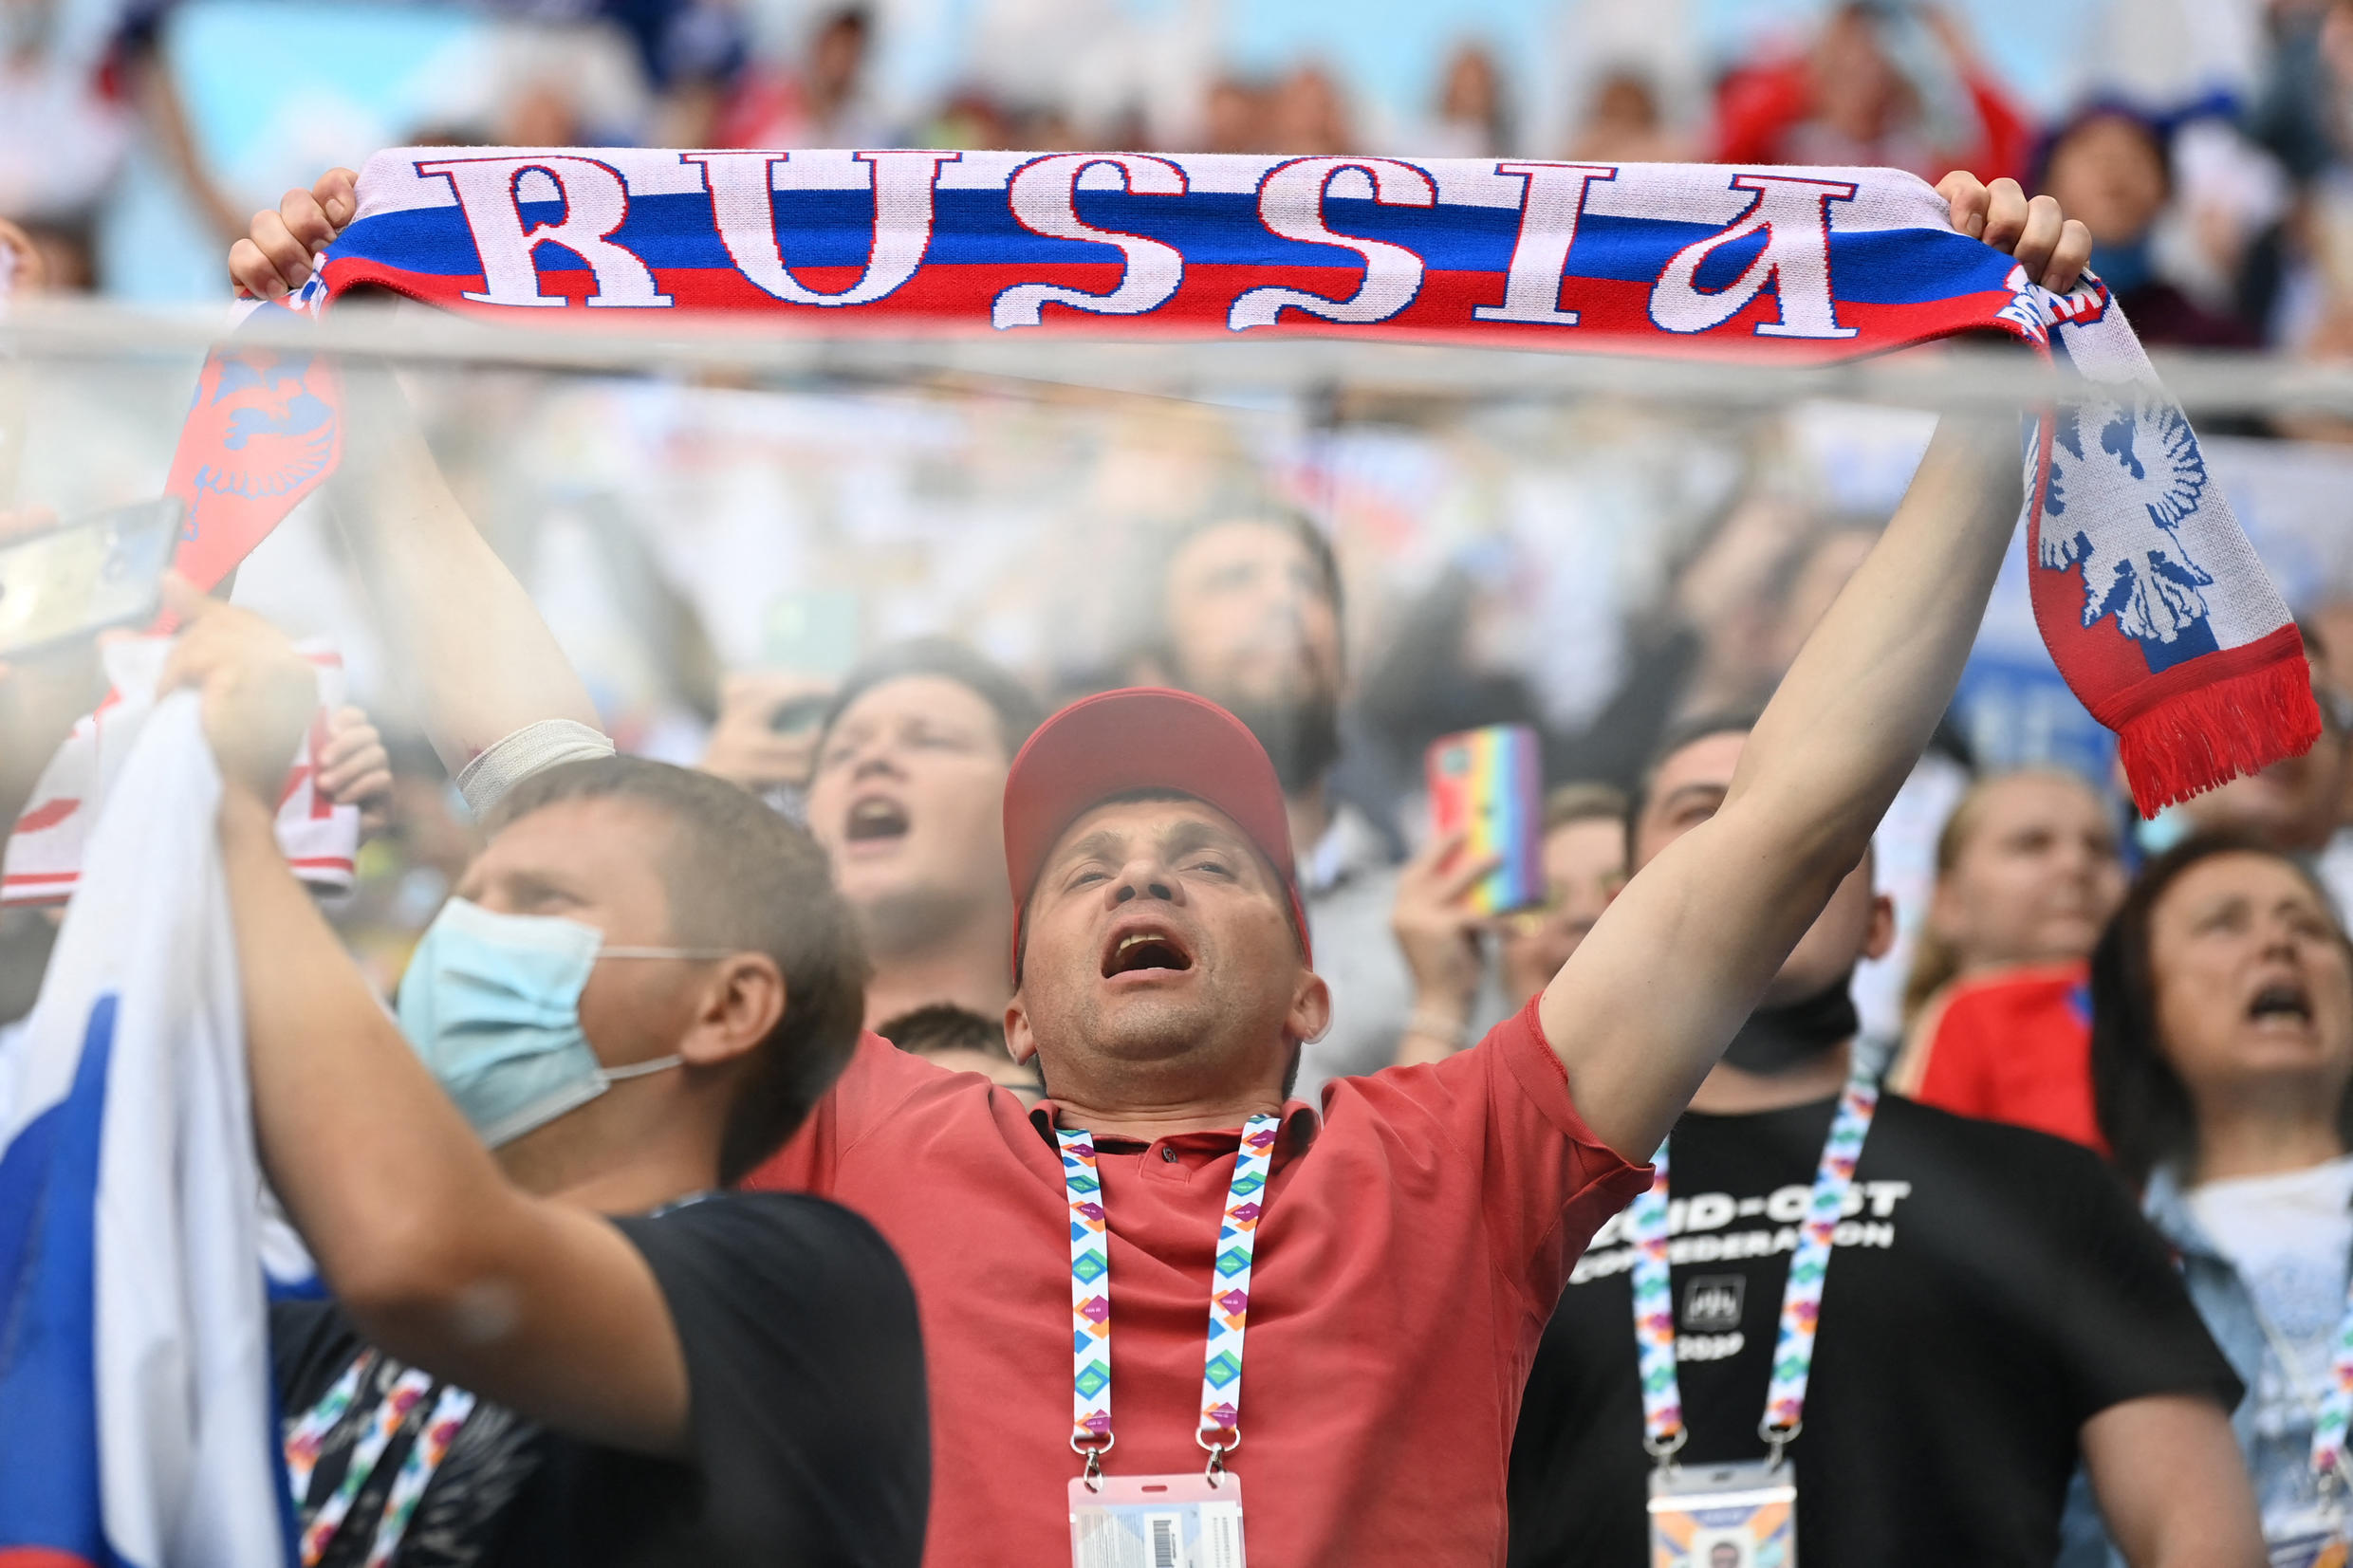 Russia fans attend a match between Finland and Russia in Saint Petersburg on June 16, 2021.